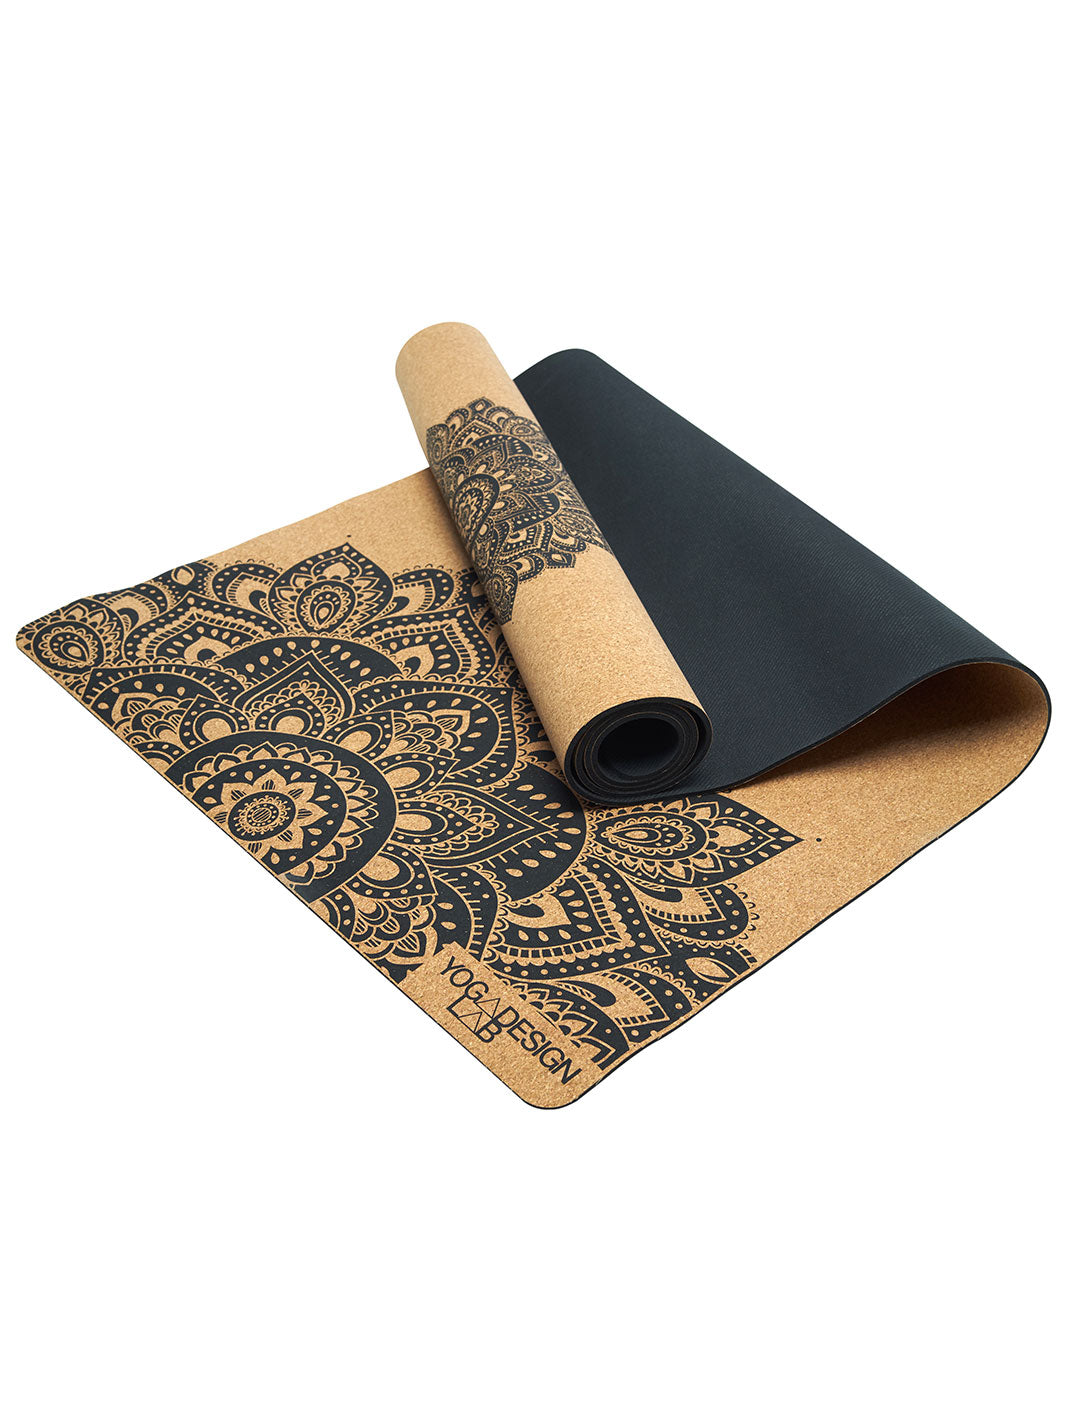 Mandala Black Cork Mat by Yoga Design Lab - Psylo Fashion